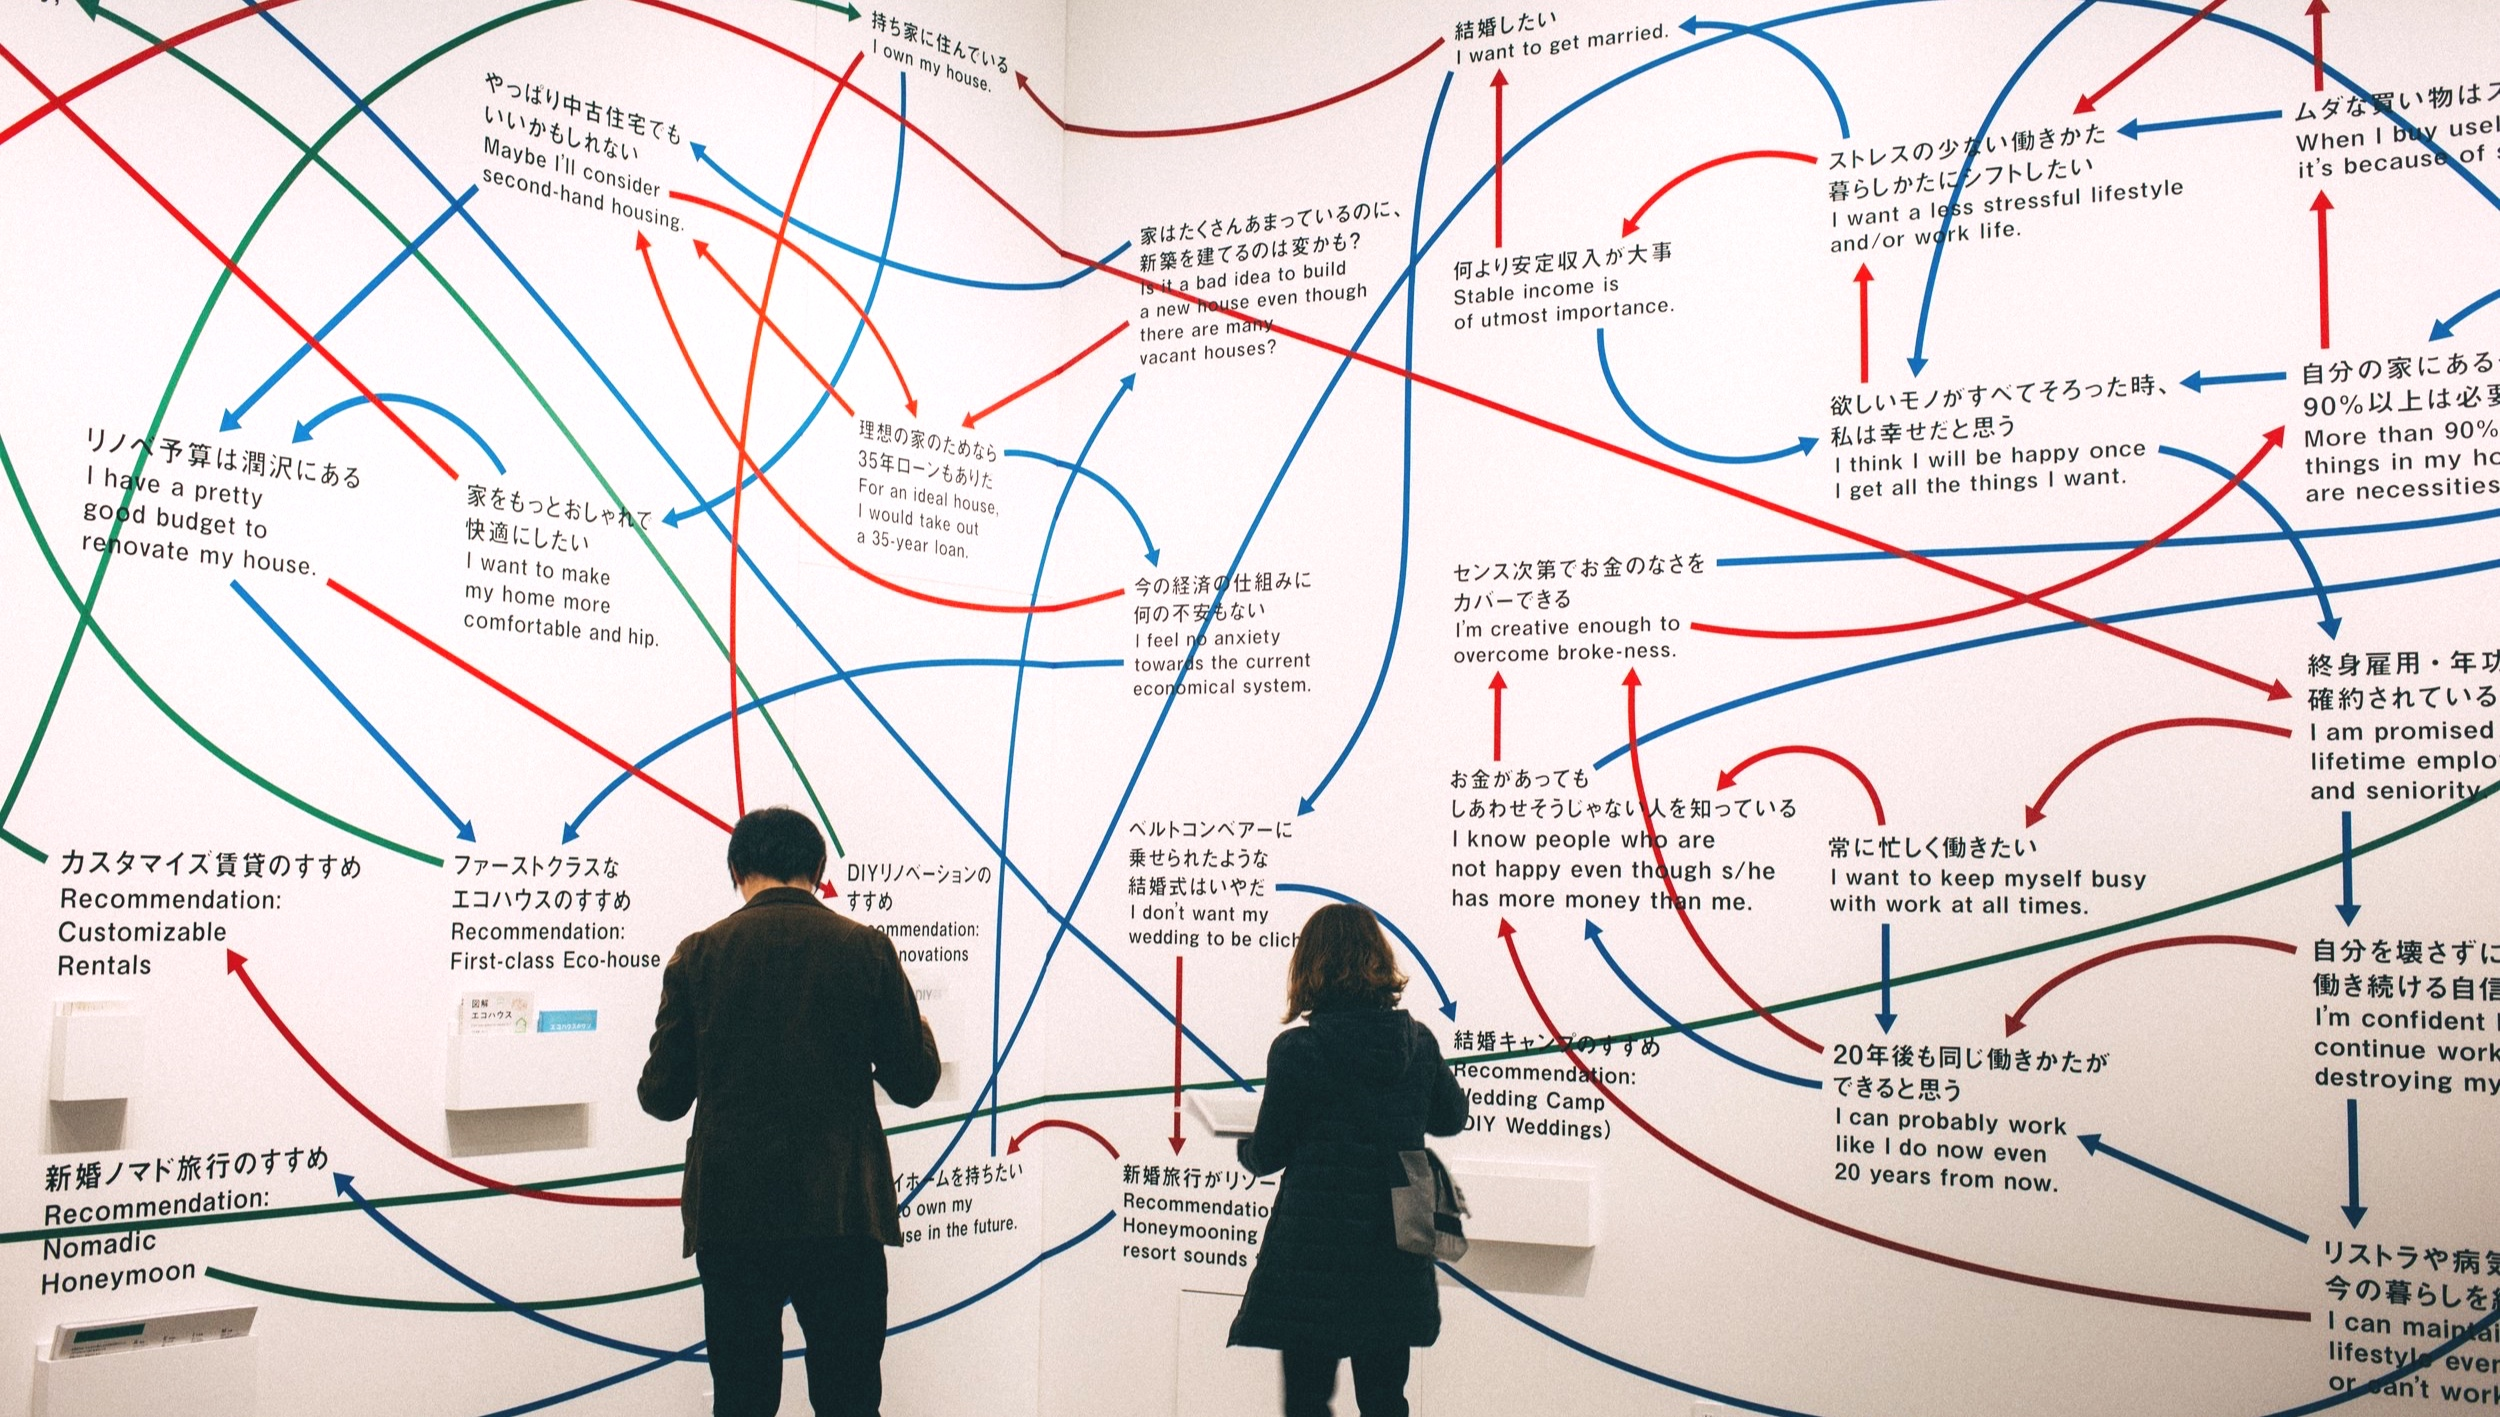 Journey mapping at an exhibition in Minato-Ku. Source: Charles Deluvio